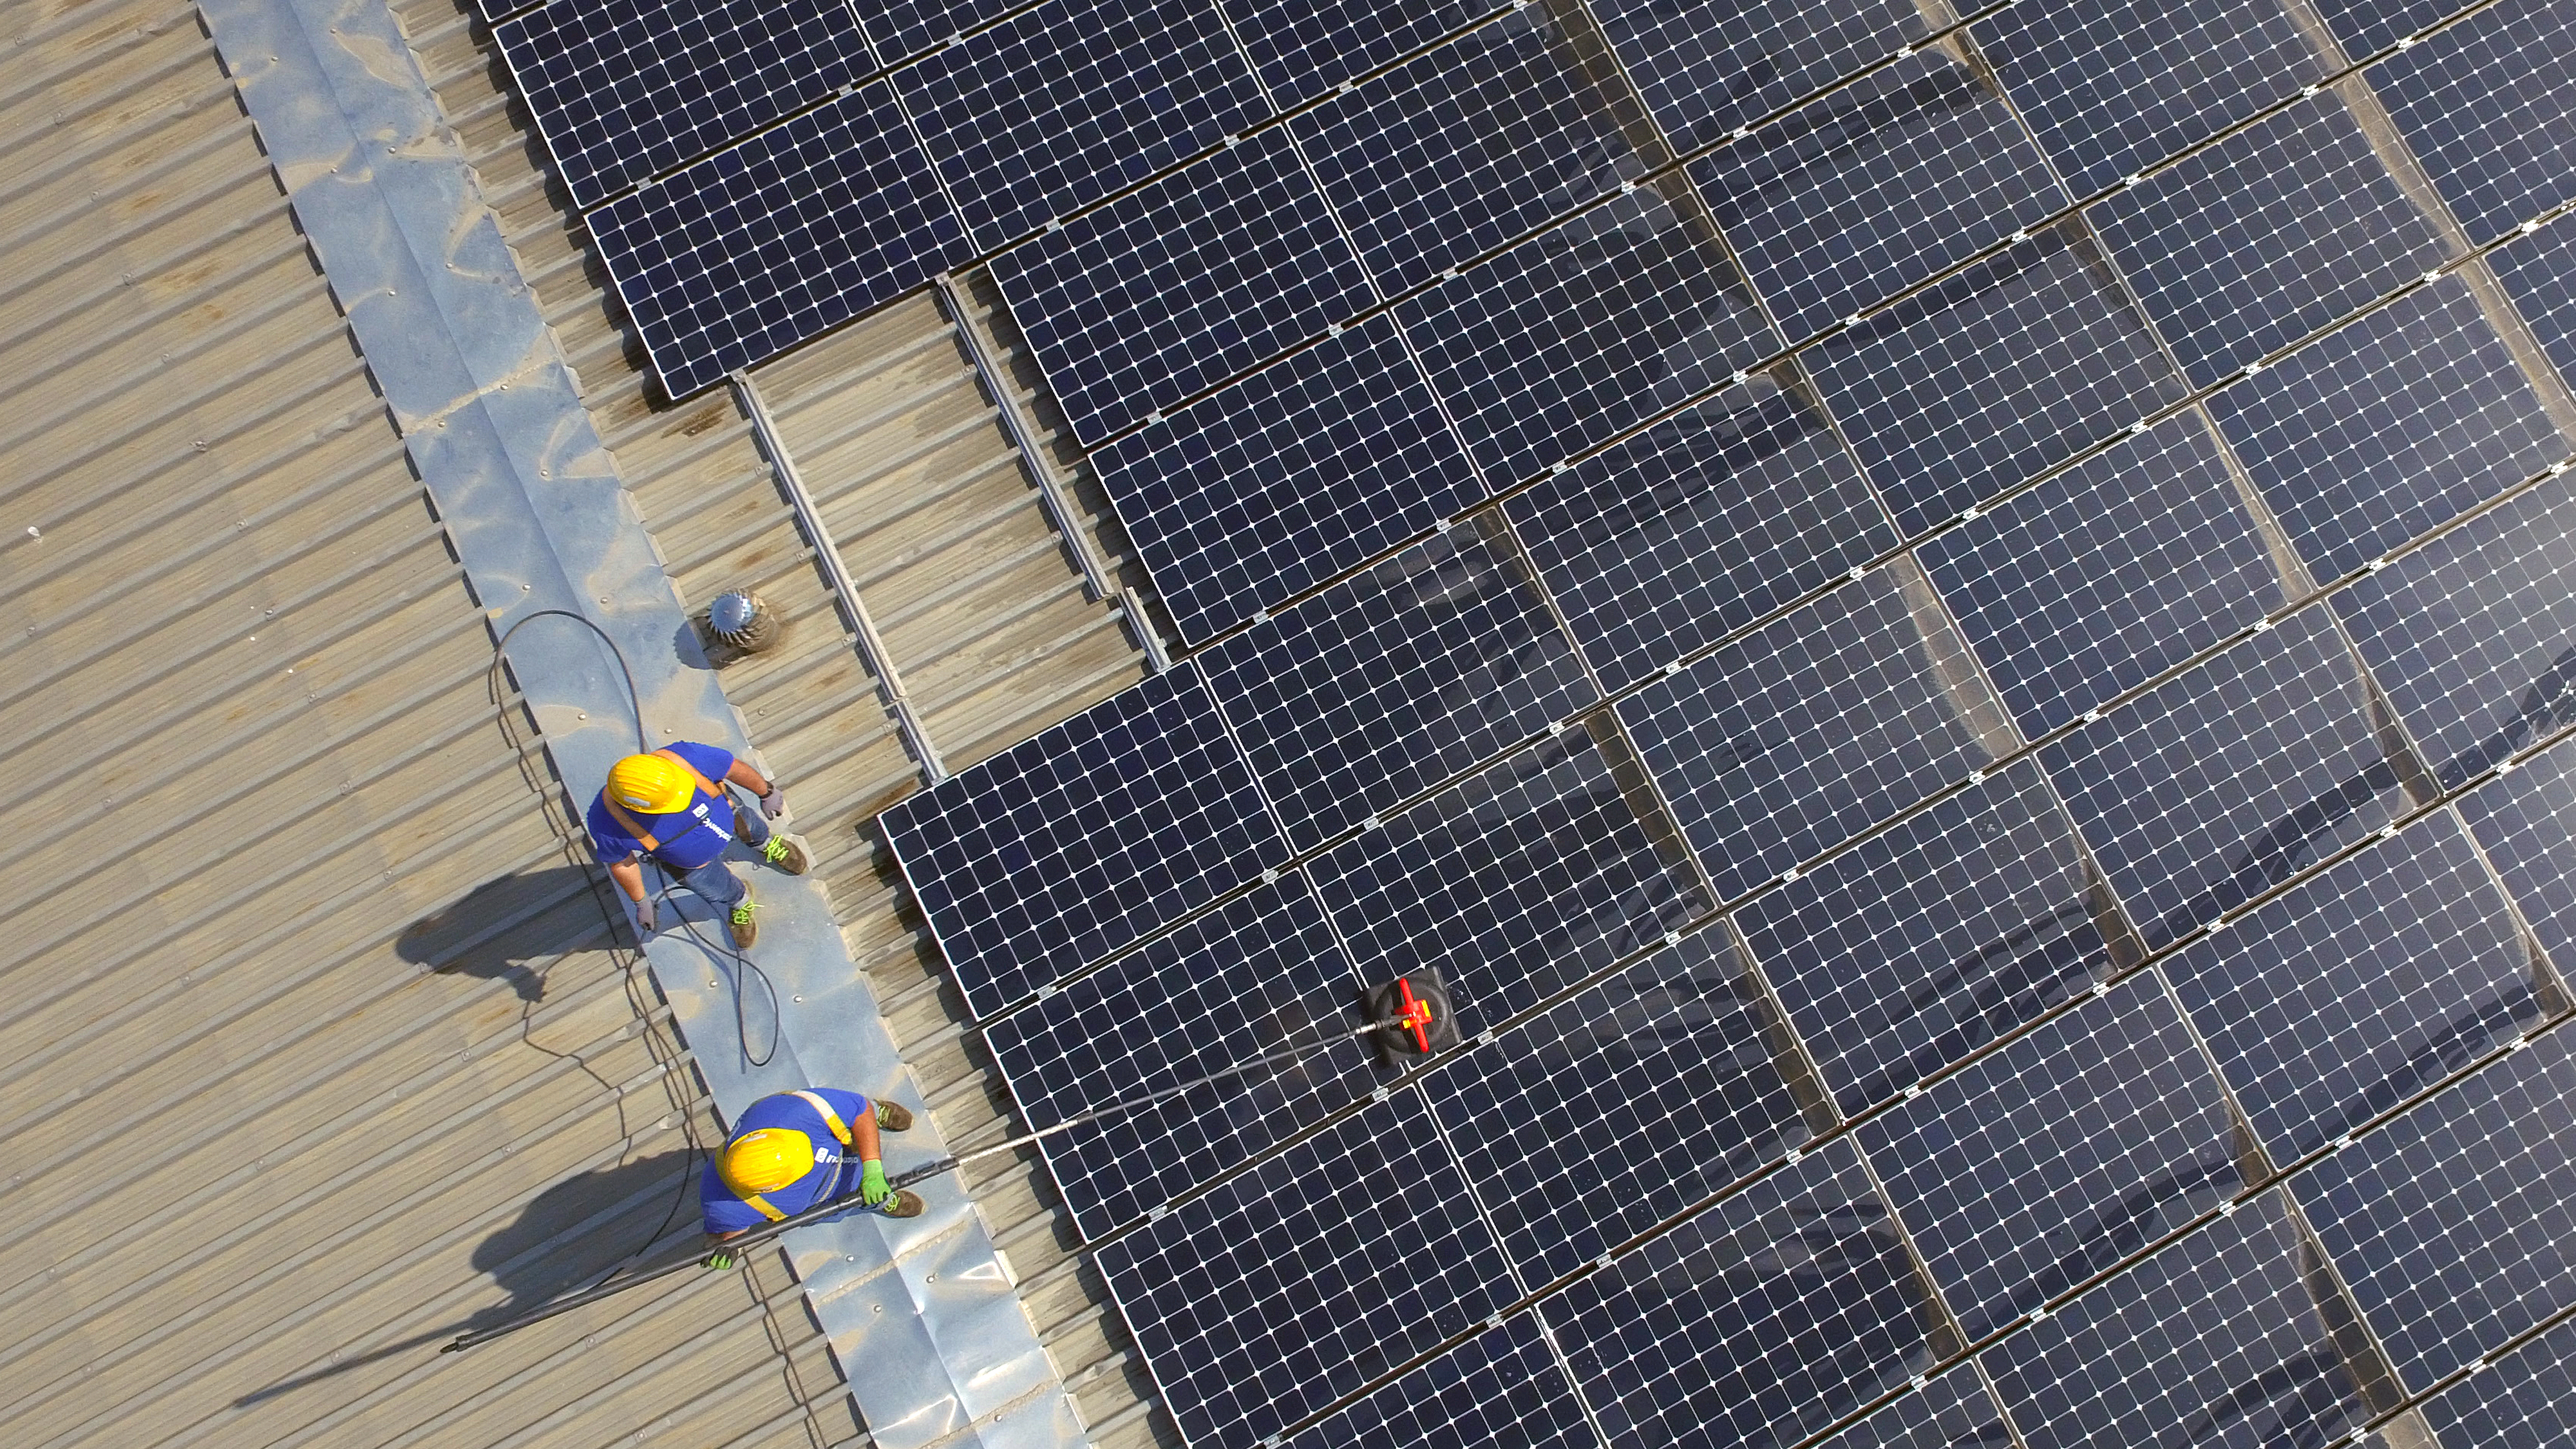 workers on the roof clean solar panels